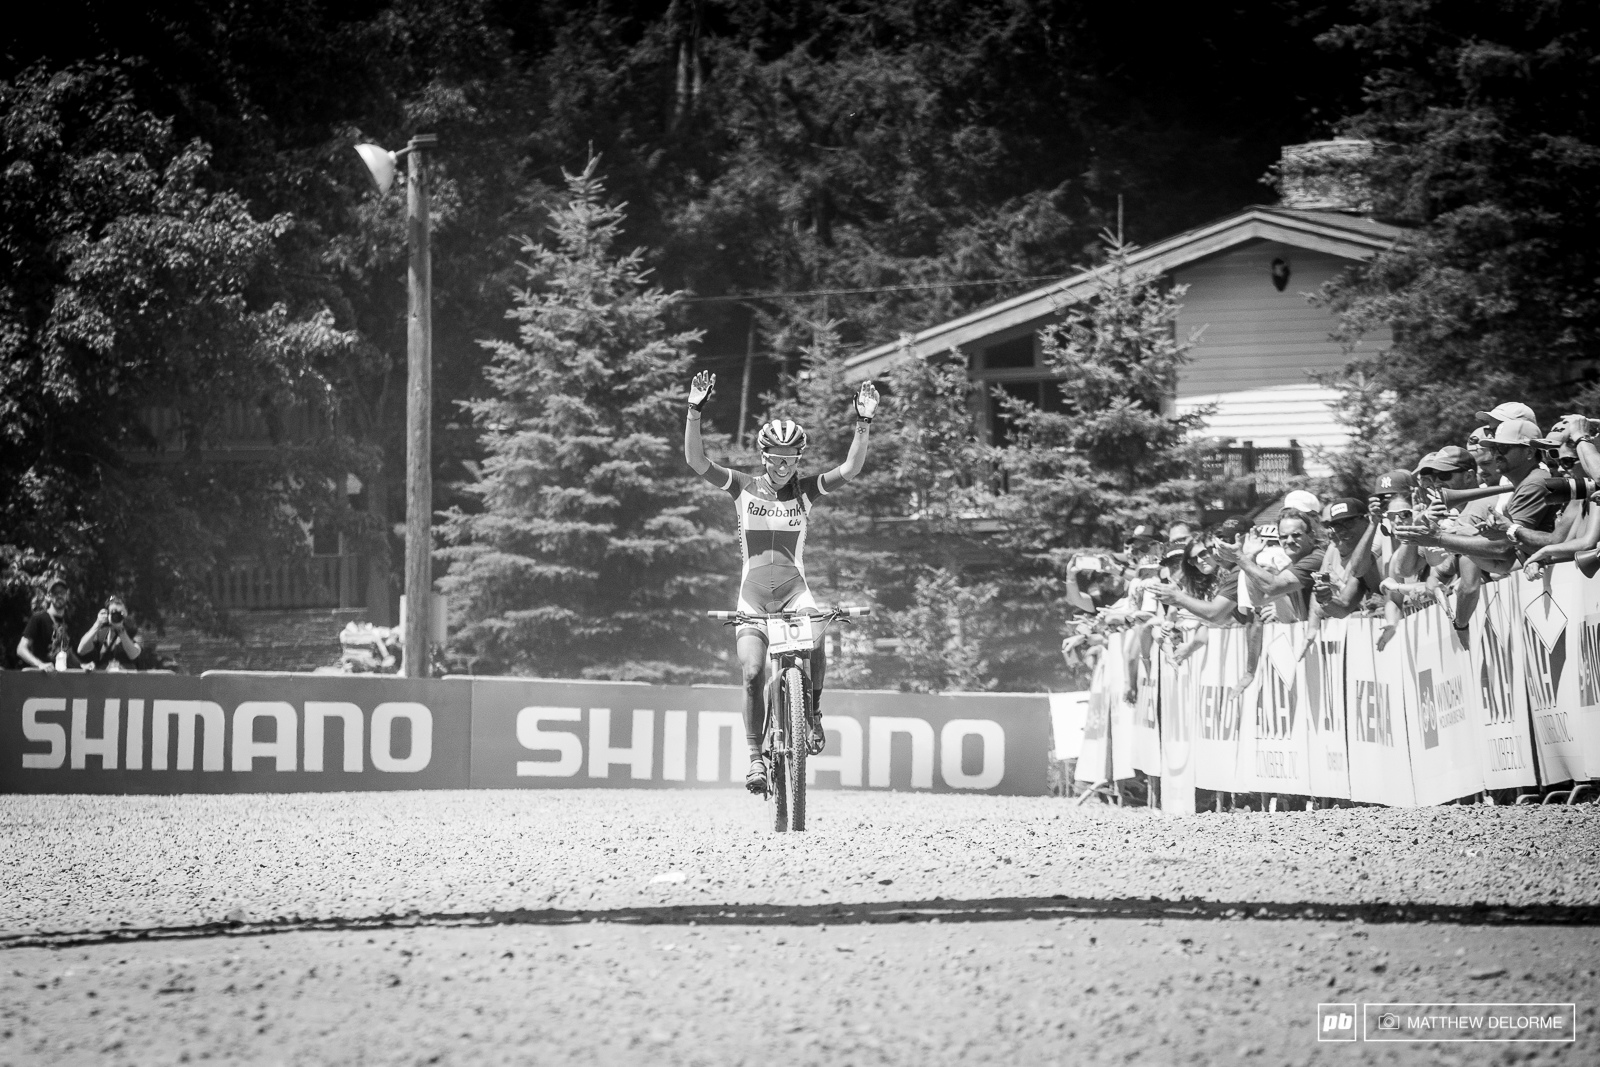 Paulie Ferrand Prevot bringing home her first win of the season.